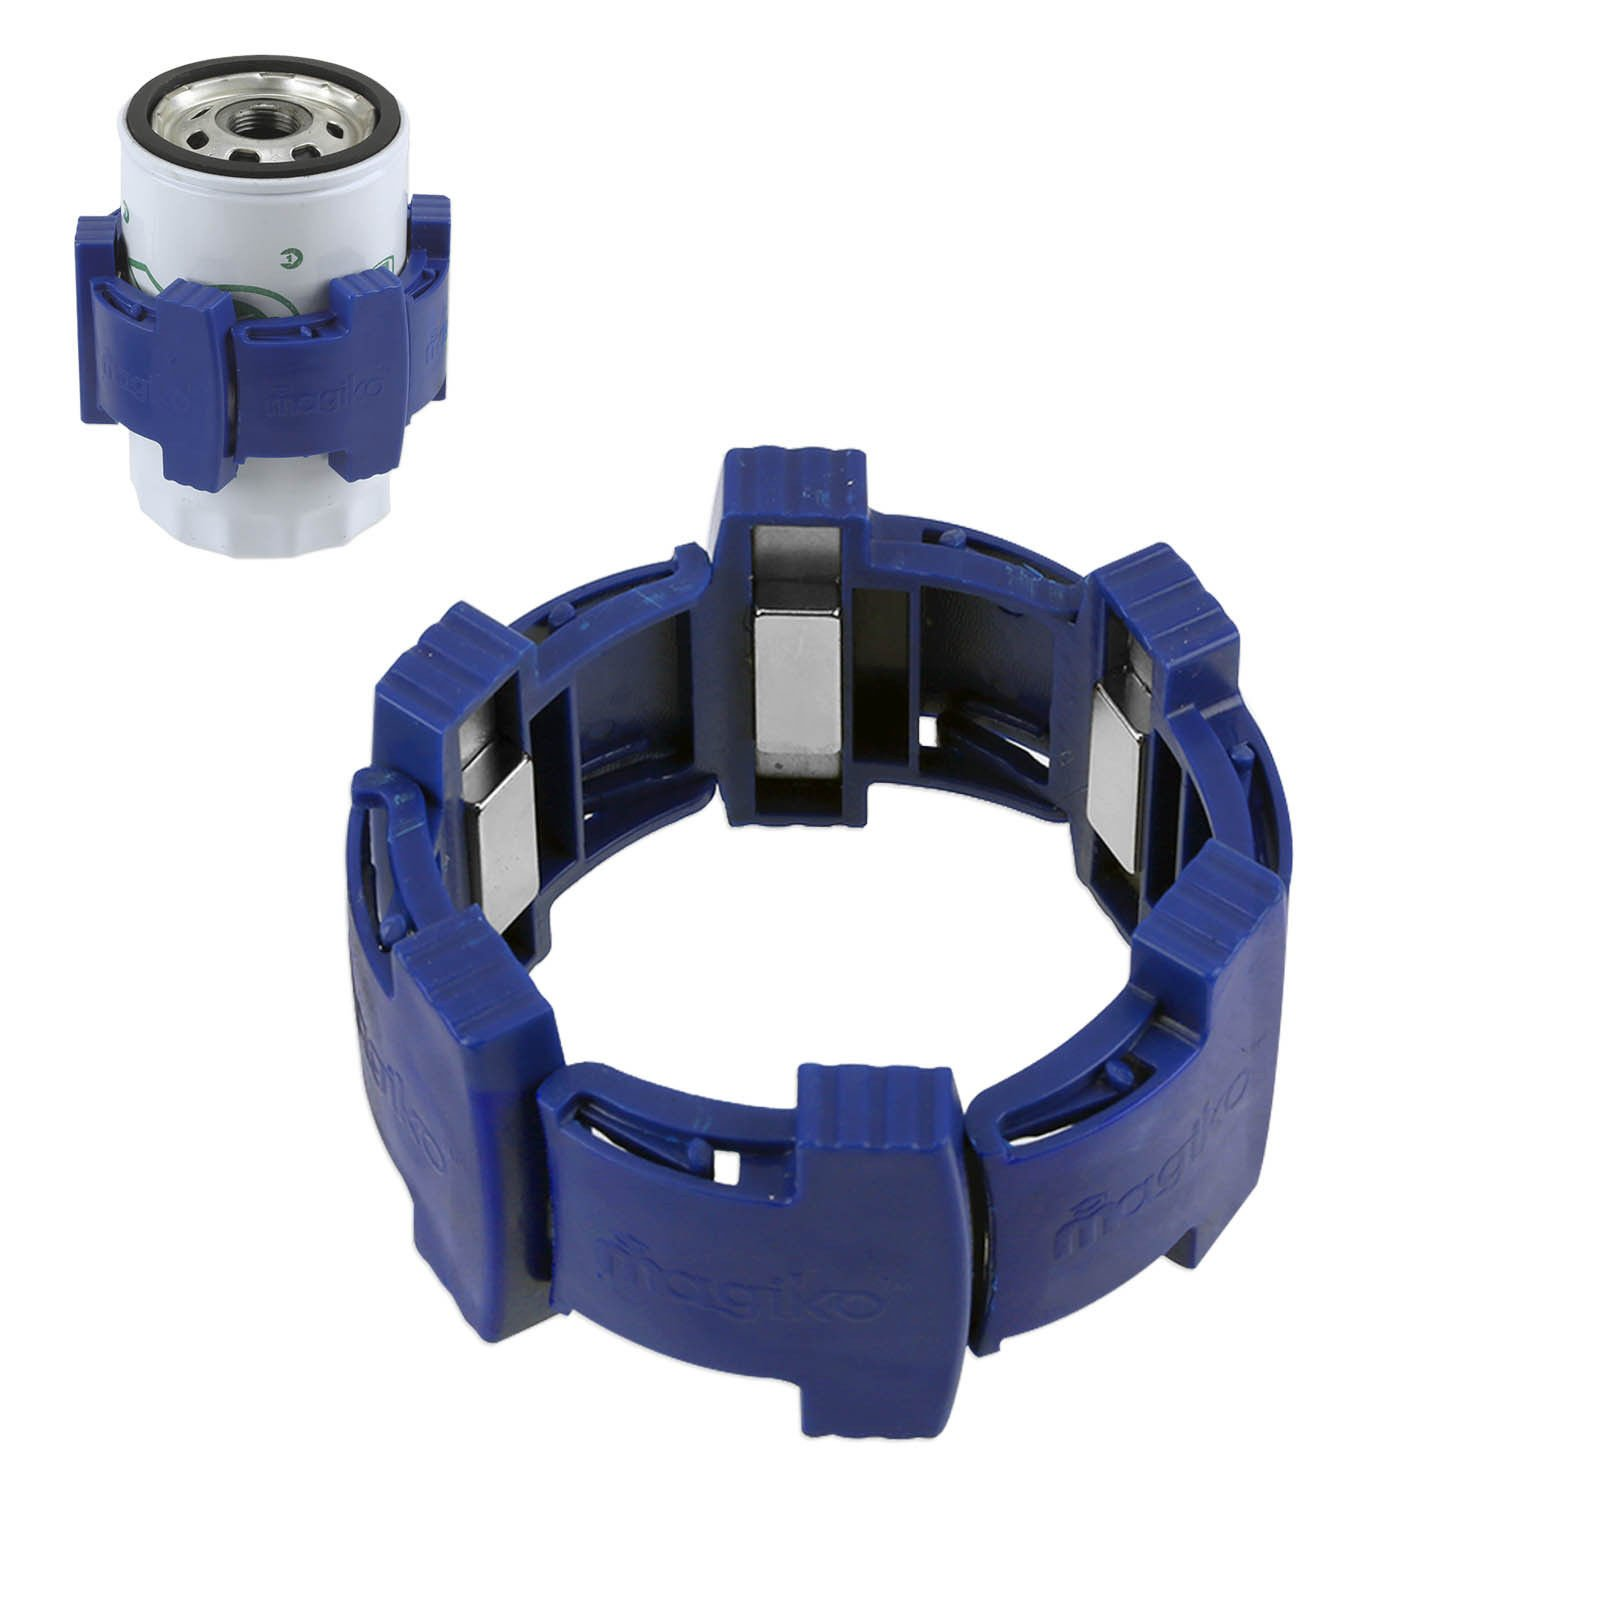 Generic Super-Power Oil Filter Magnet Traps Metal Particles in Oil Extends Engine Life {8%0180?1}